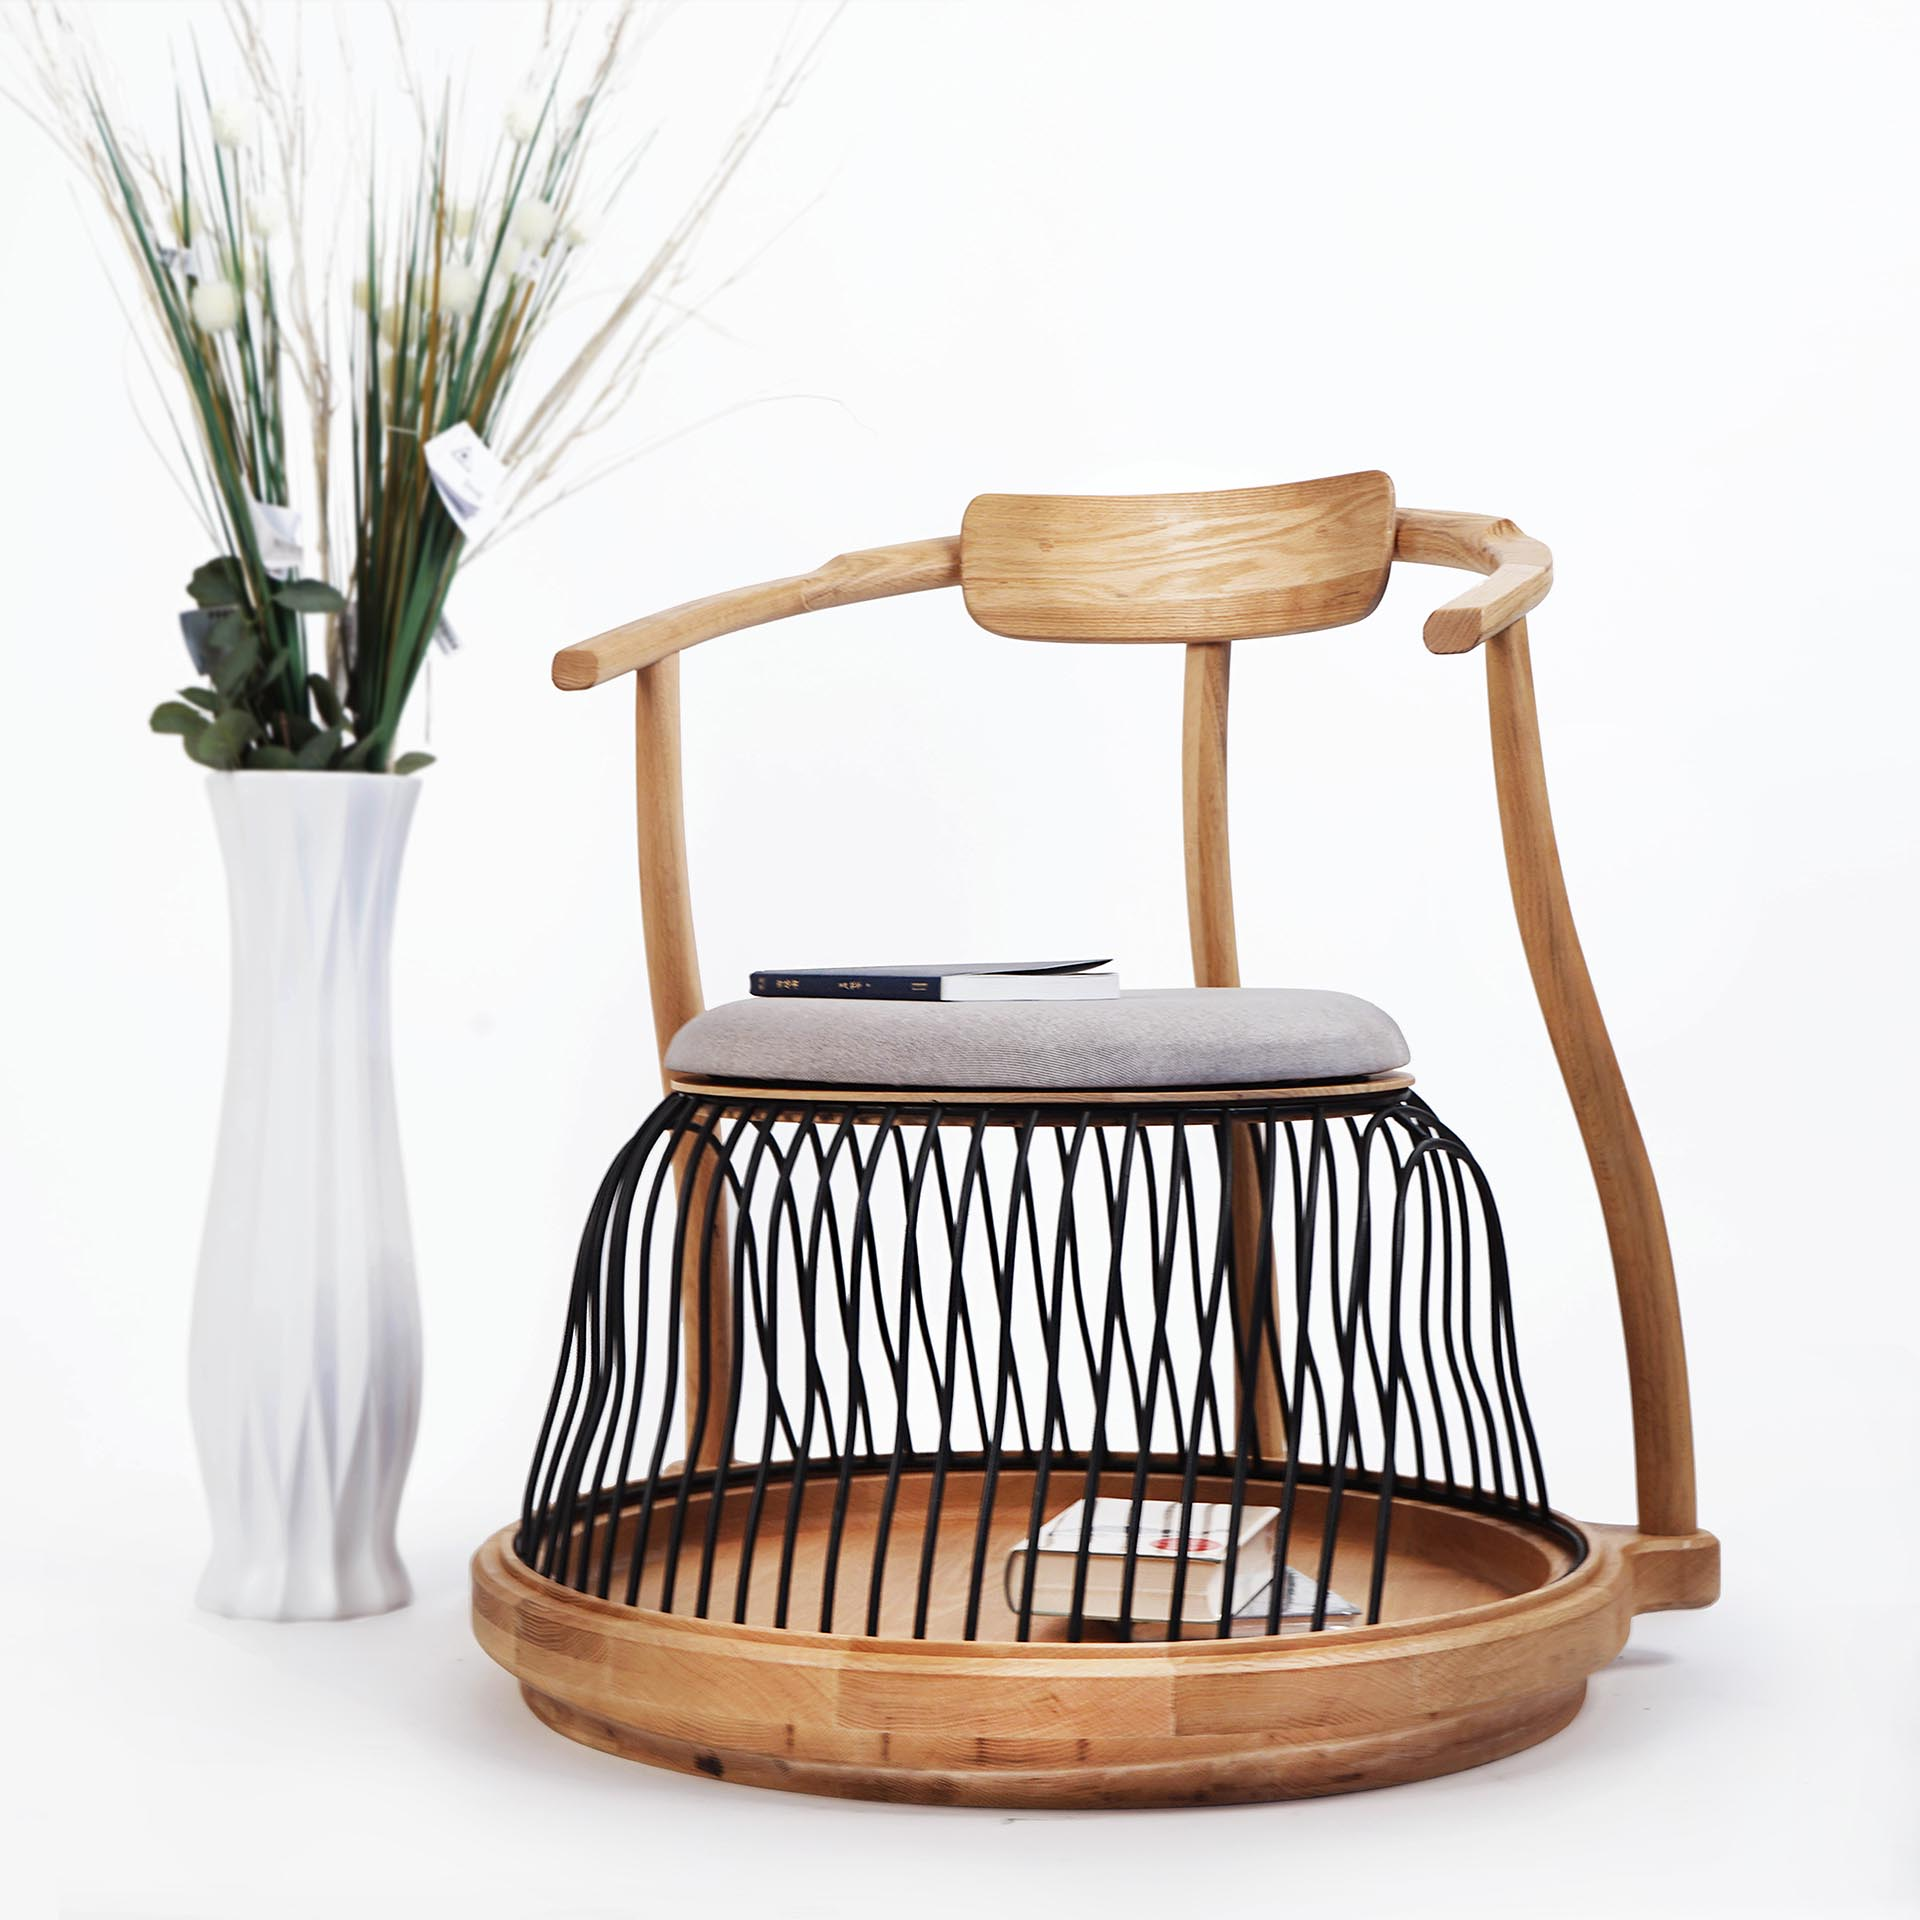 Acorn Leisure Chair Multipurpose by Wei Jingye, Chen Yufan and Wang Ruilin.